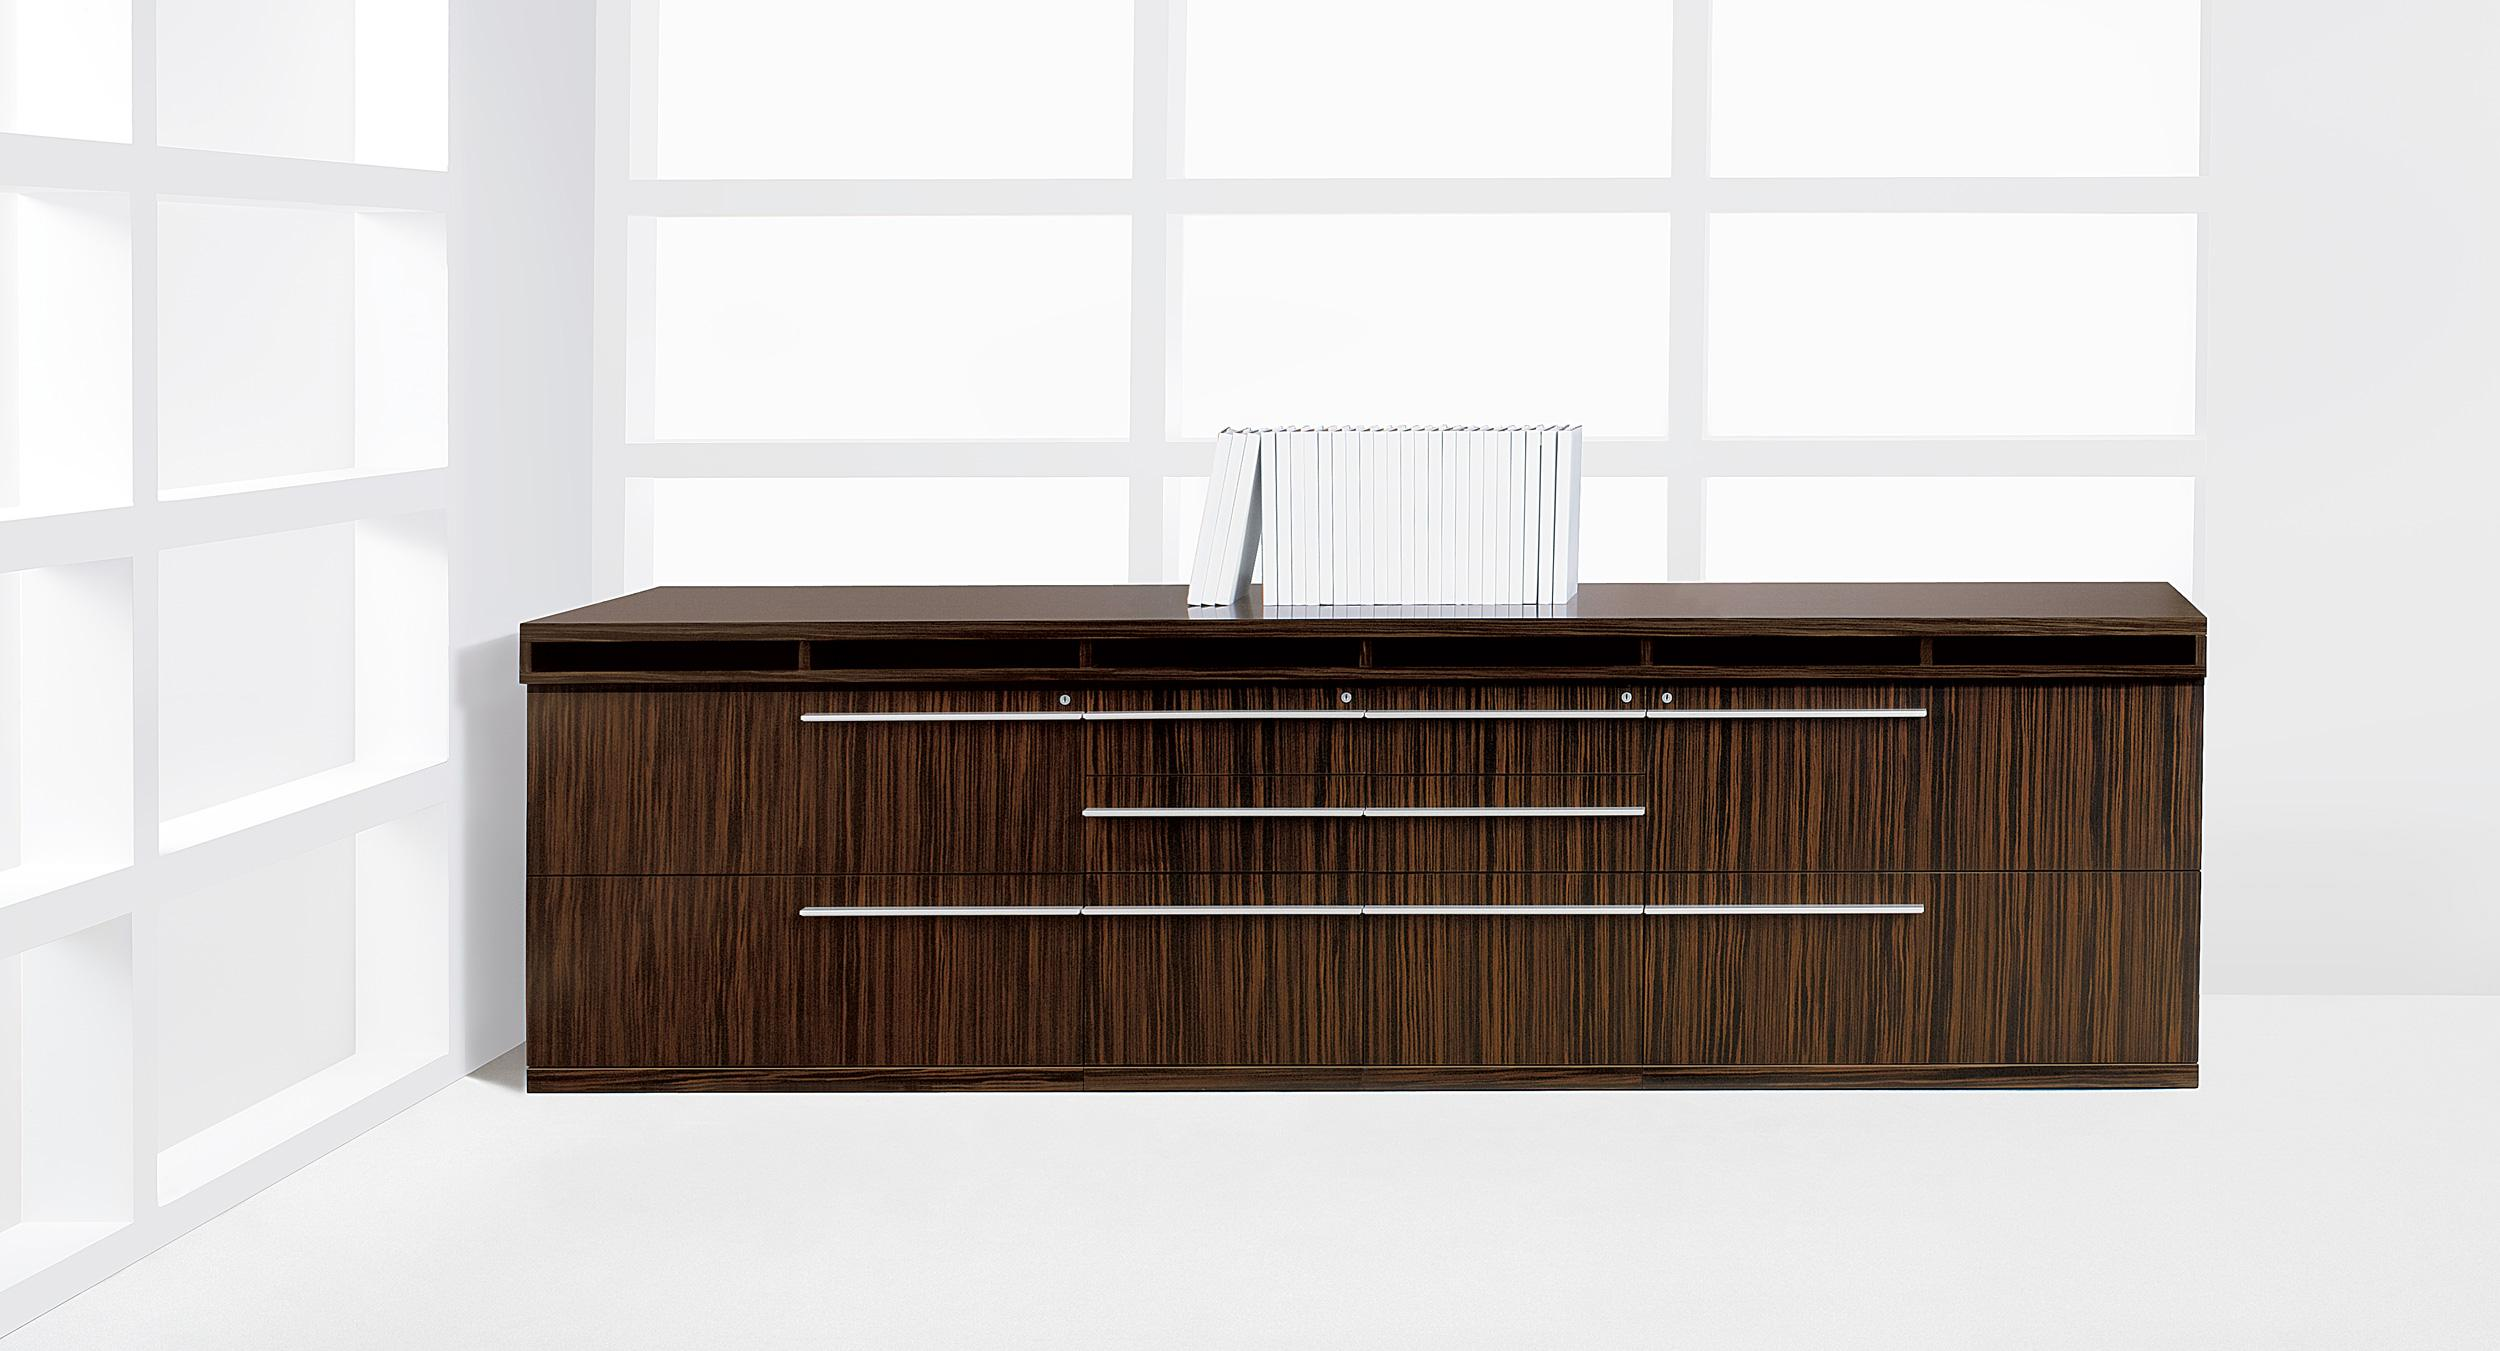 Stria's linear satin aluminum pulls can be oriented to the left, right, or center of each drawer front.